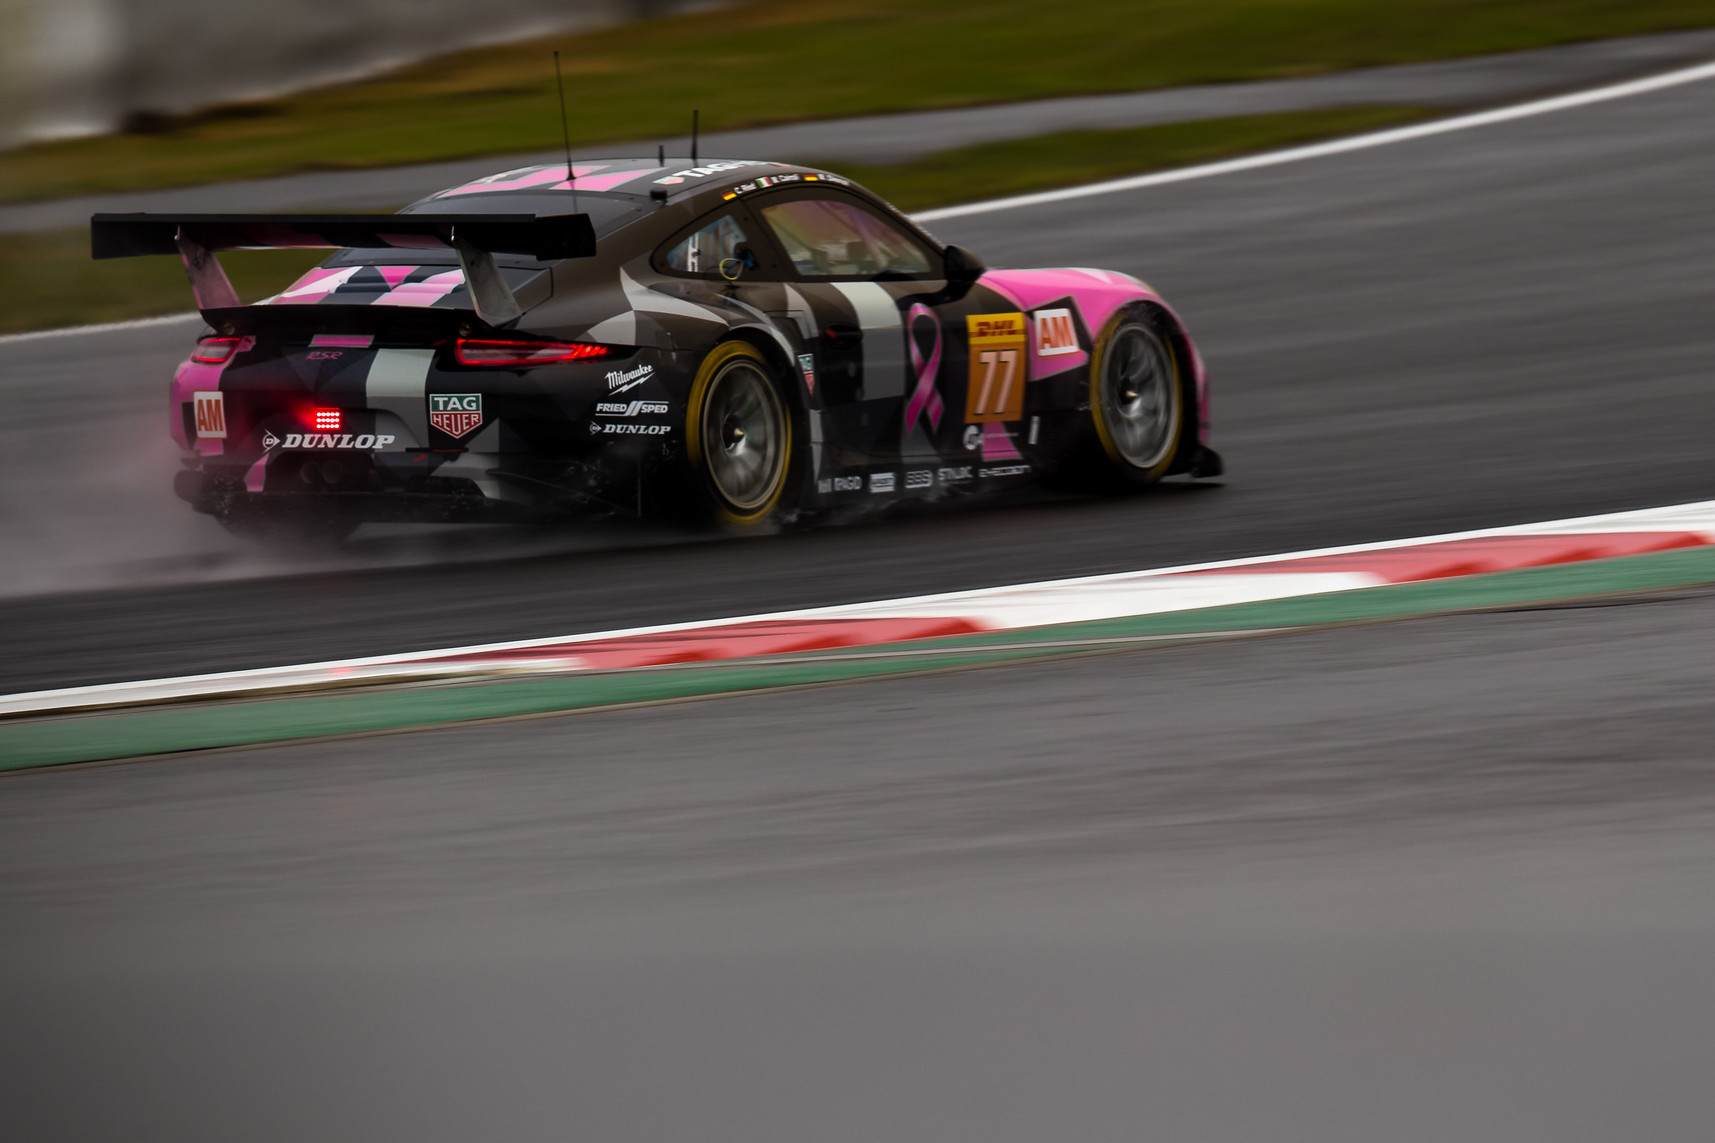 Patrick Dempsey To Wave Off 6 Hours Of Fuji Fia World Endurance Cham